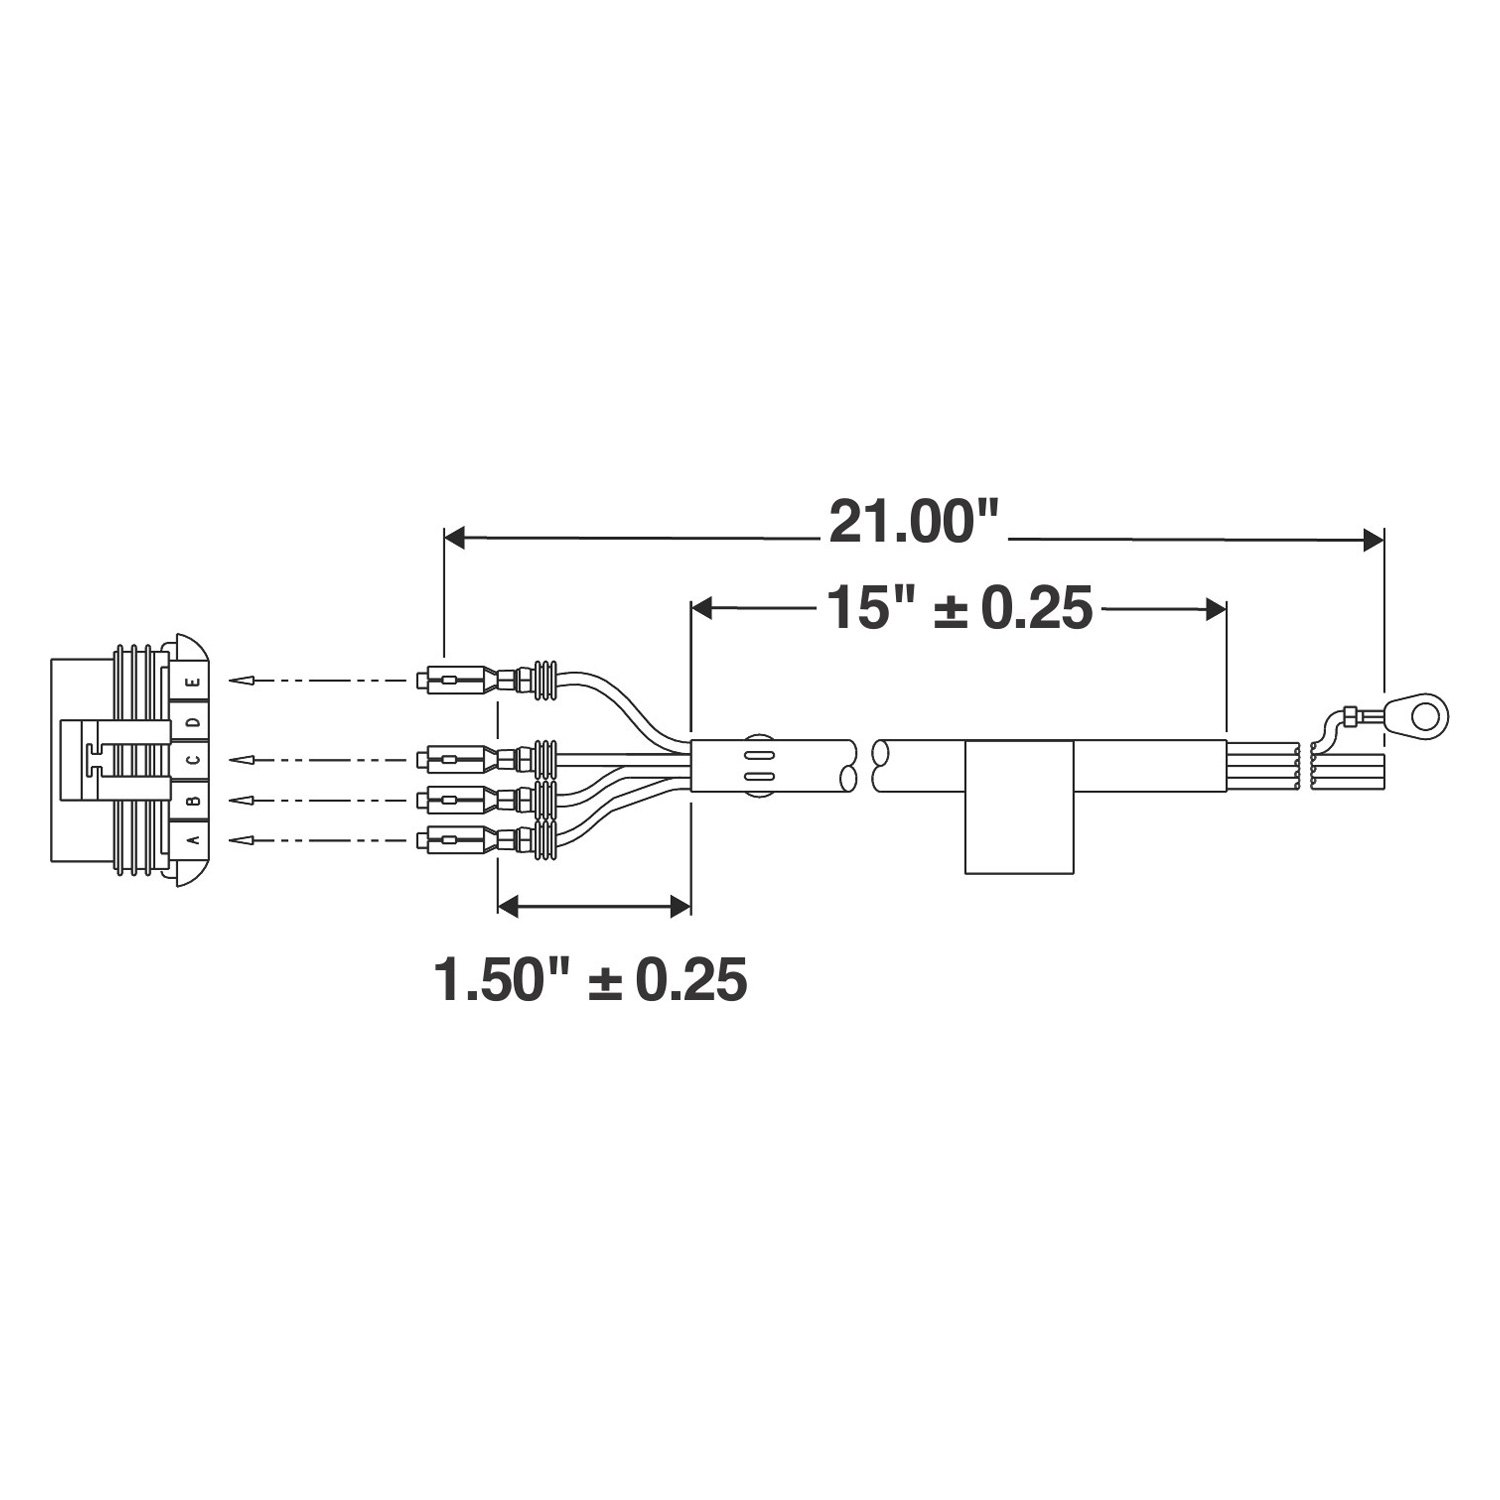 9464 4 signal stat wiring diagram 5010 ford wiring diagram \u2022 wiring signal stat 905 wiring diagram at gsmportal.co